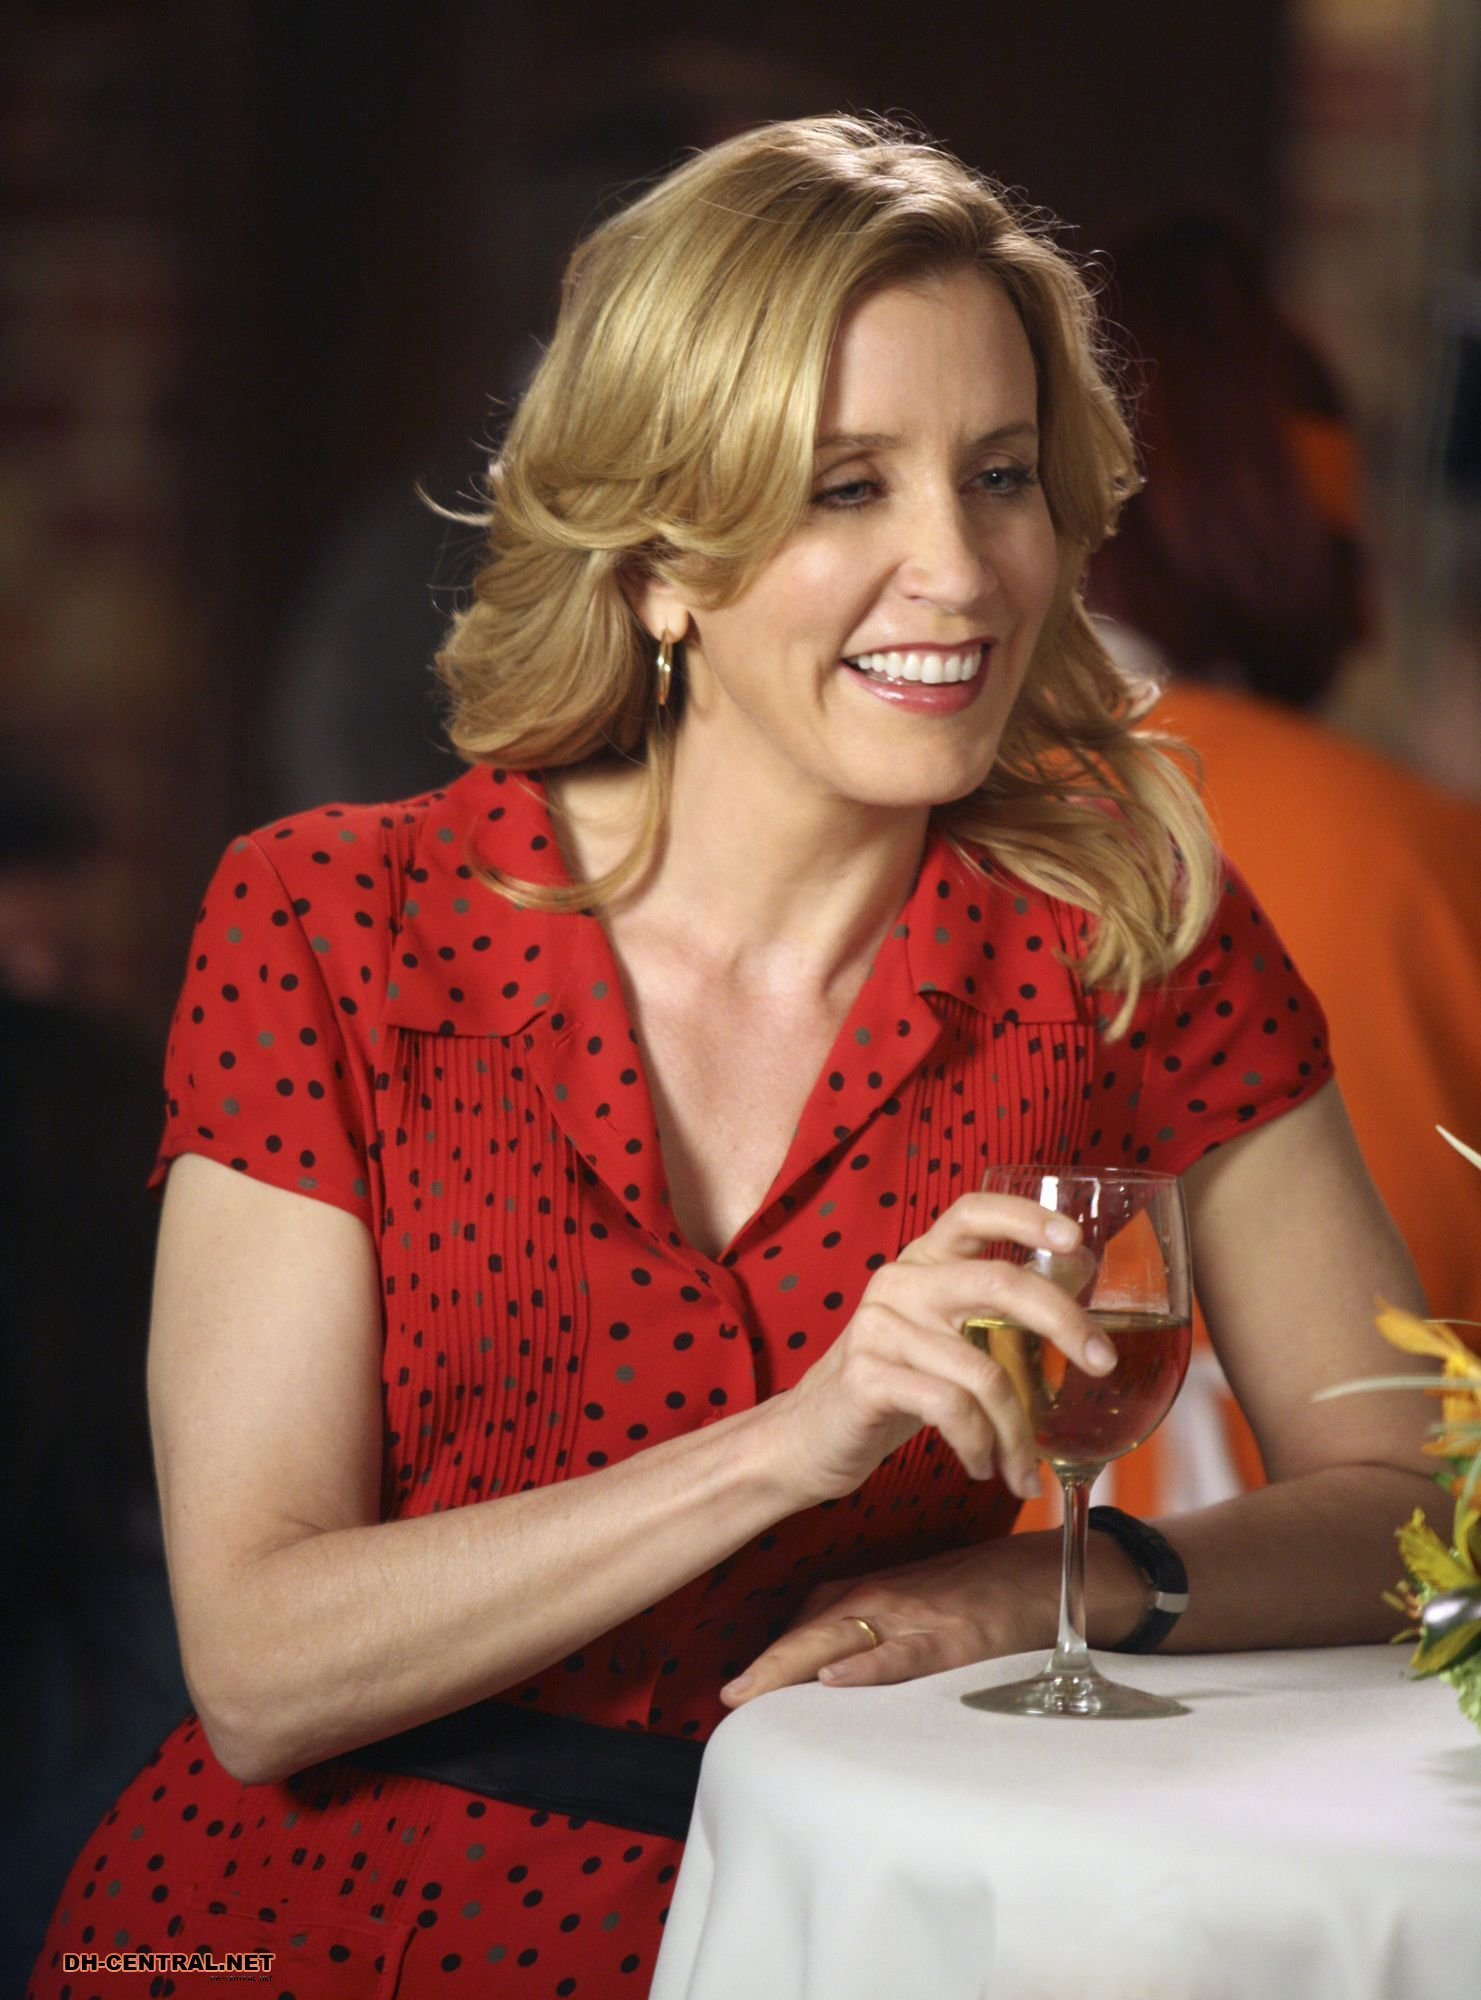 http://images2.fanpop.com/image/photos/11400000/DH-desperate-housewives-11476077-1481-2000.jpg